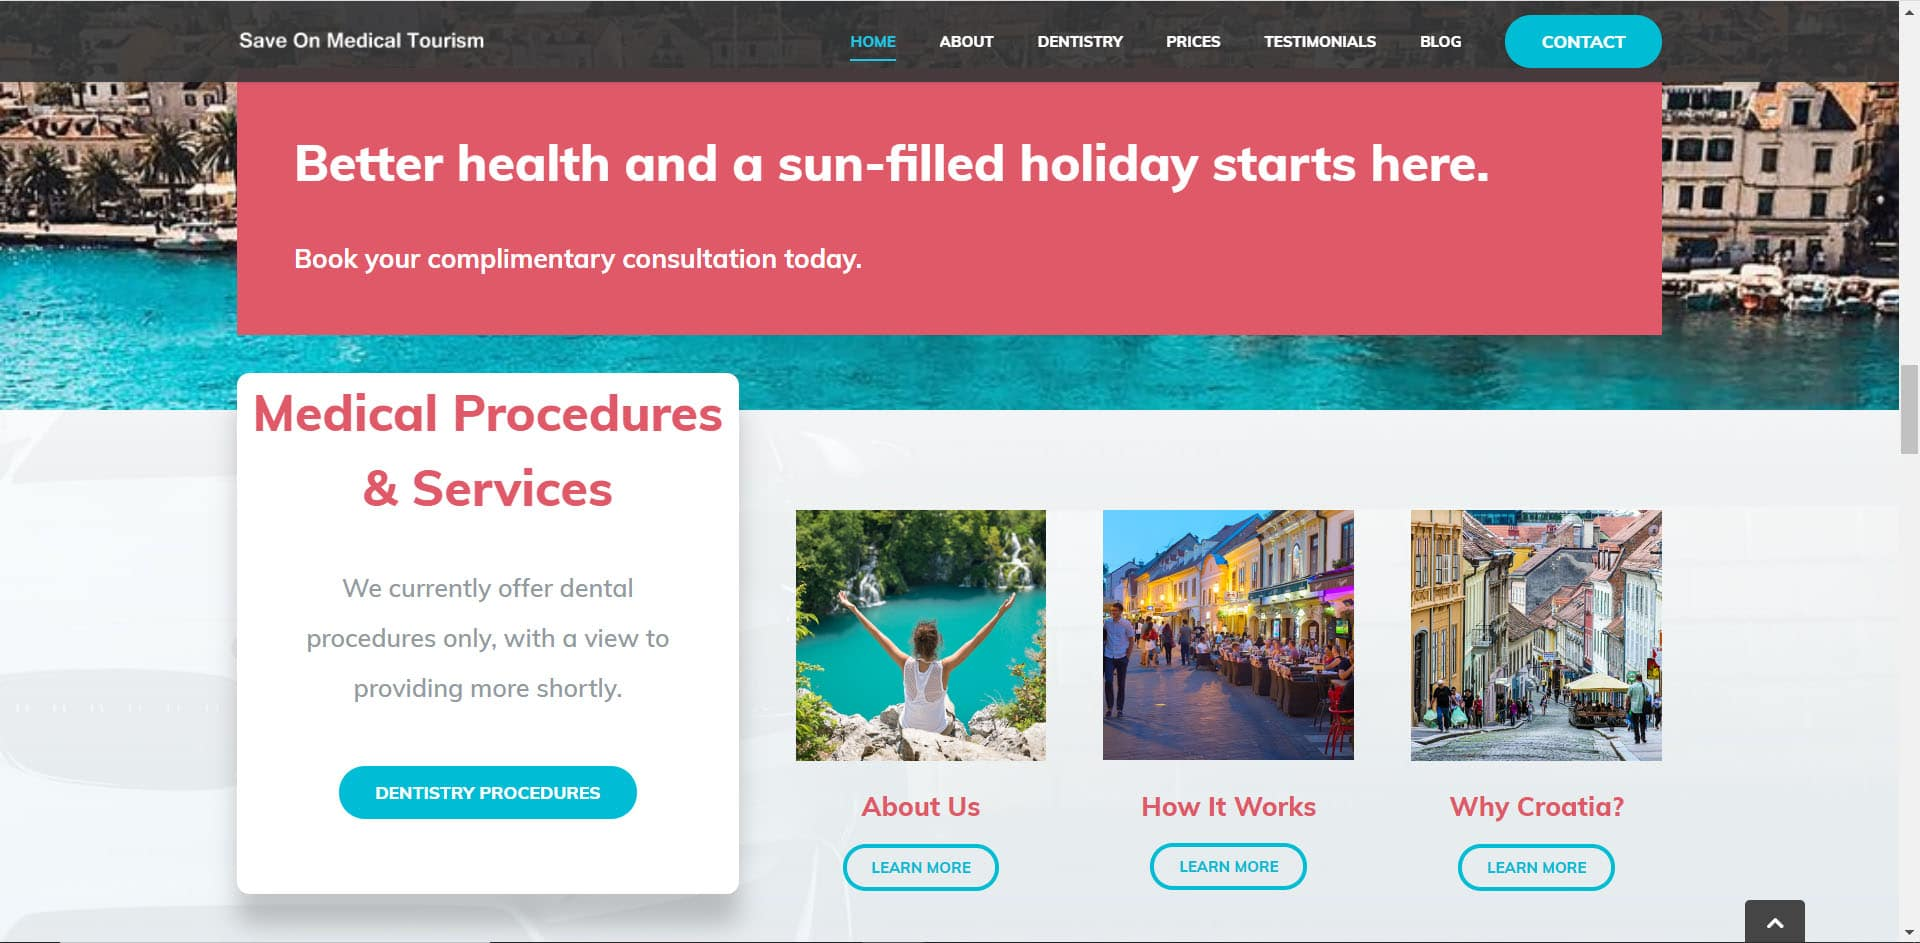 Save on Medical Tourism Home Page (Website Build & Copywriting Example)